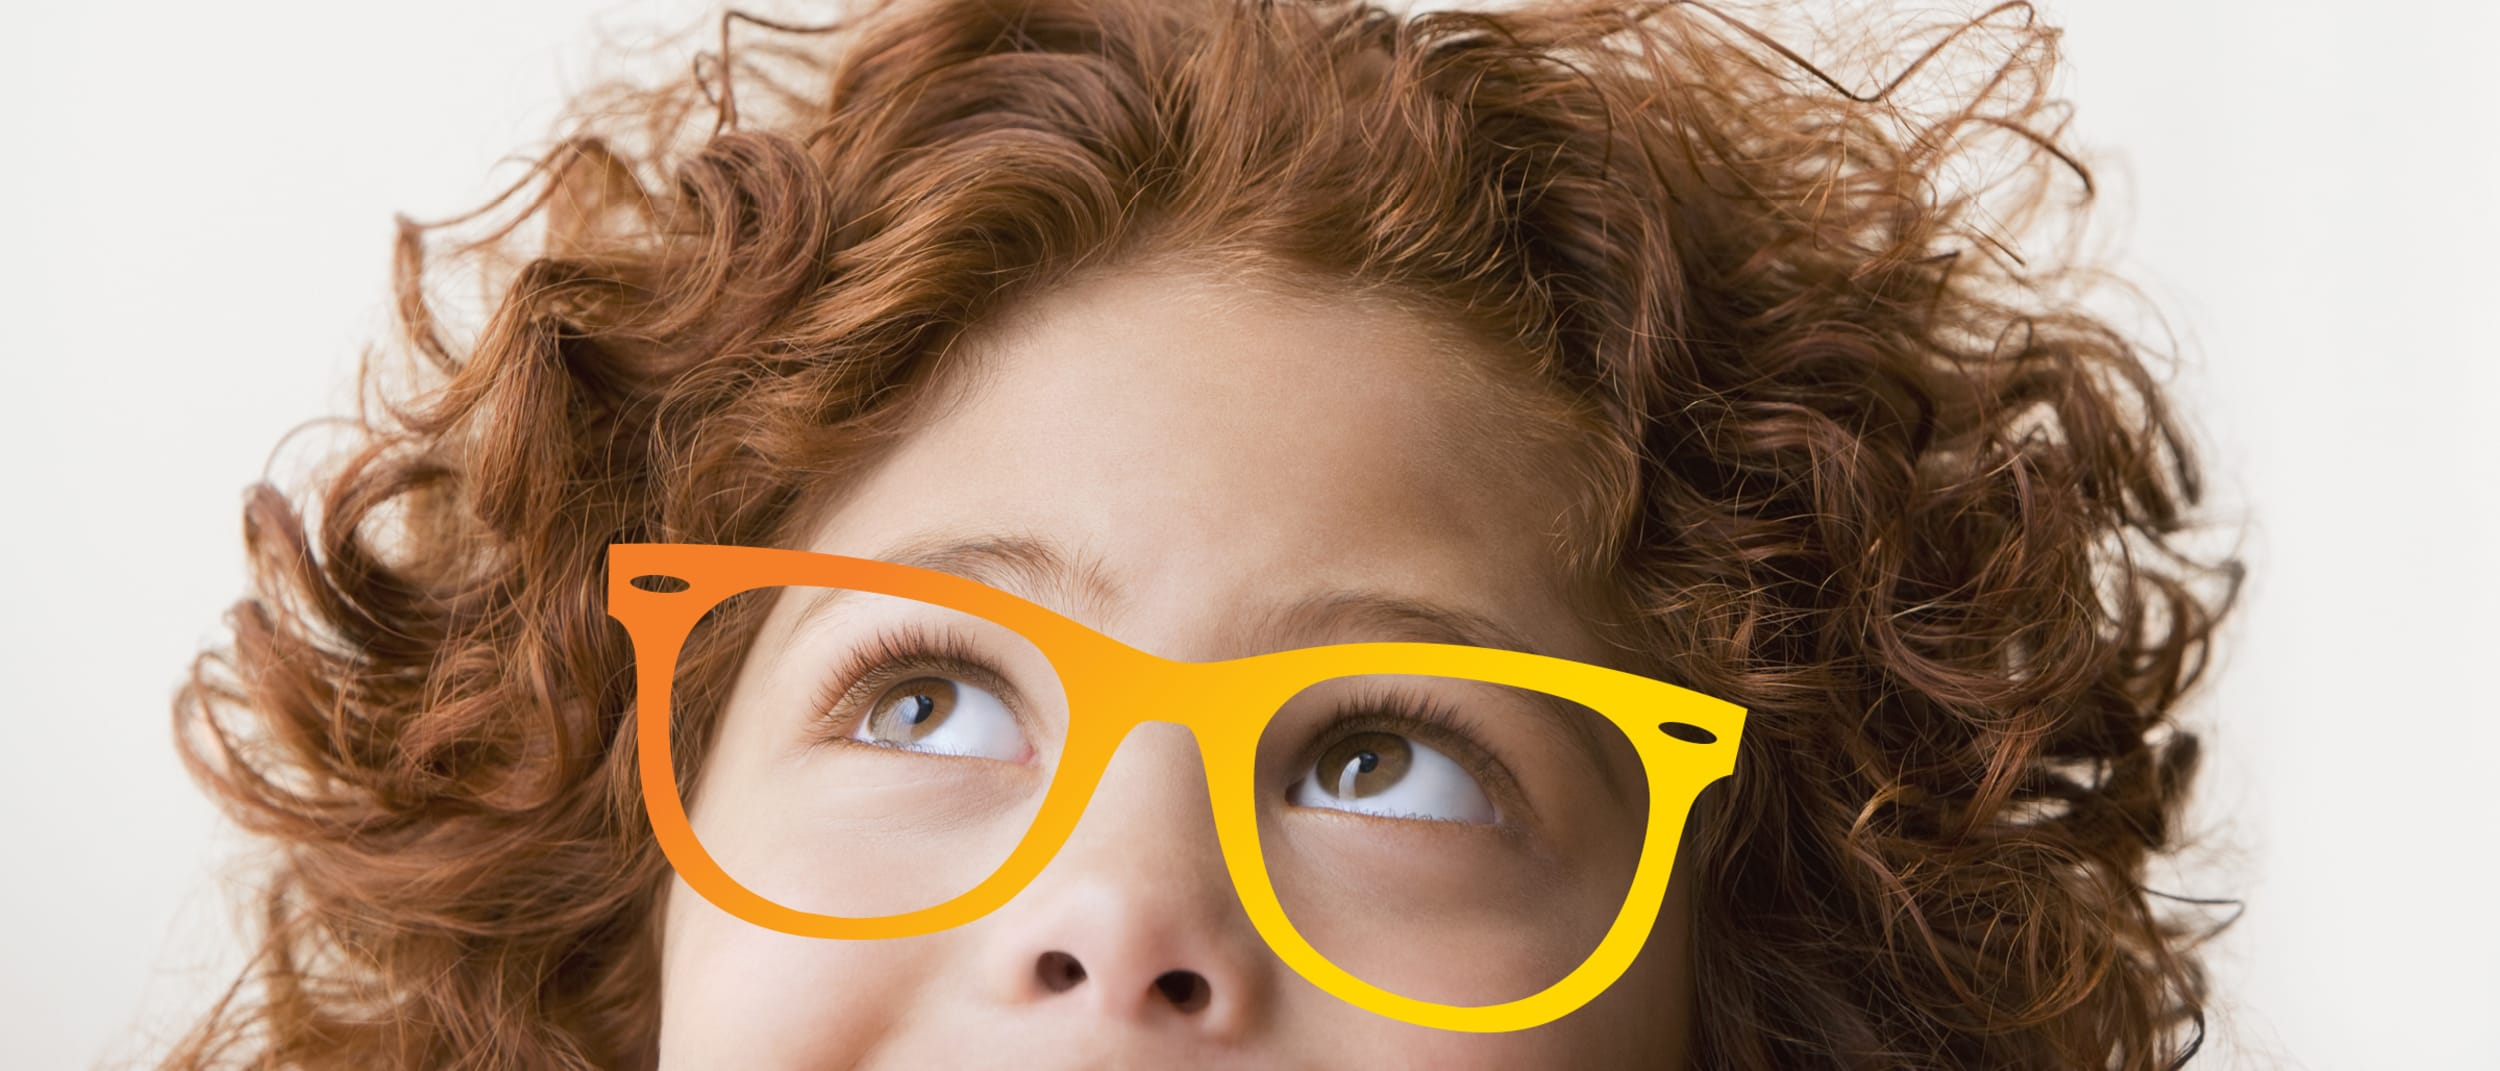 OPSM: 80% of childhood learning is visual